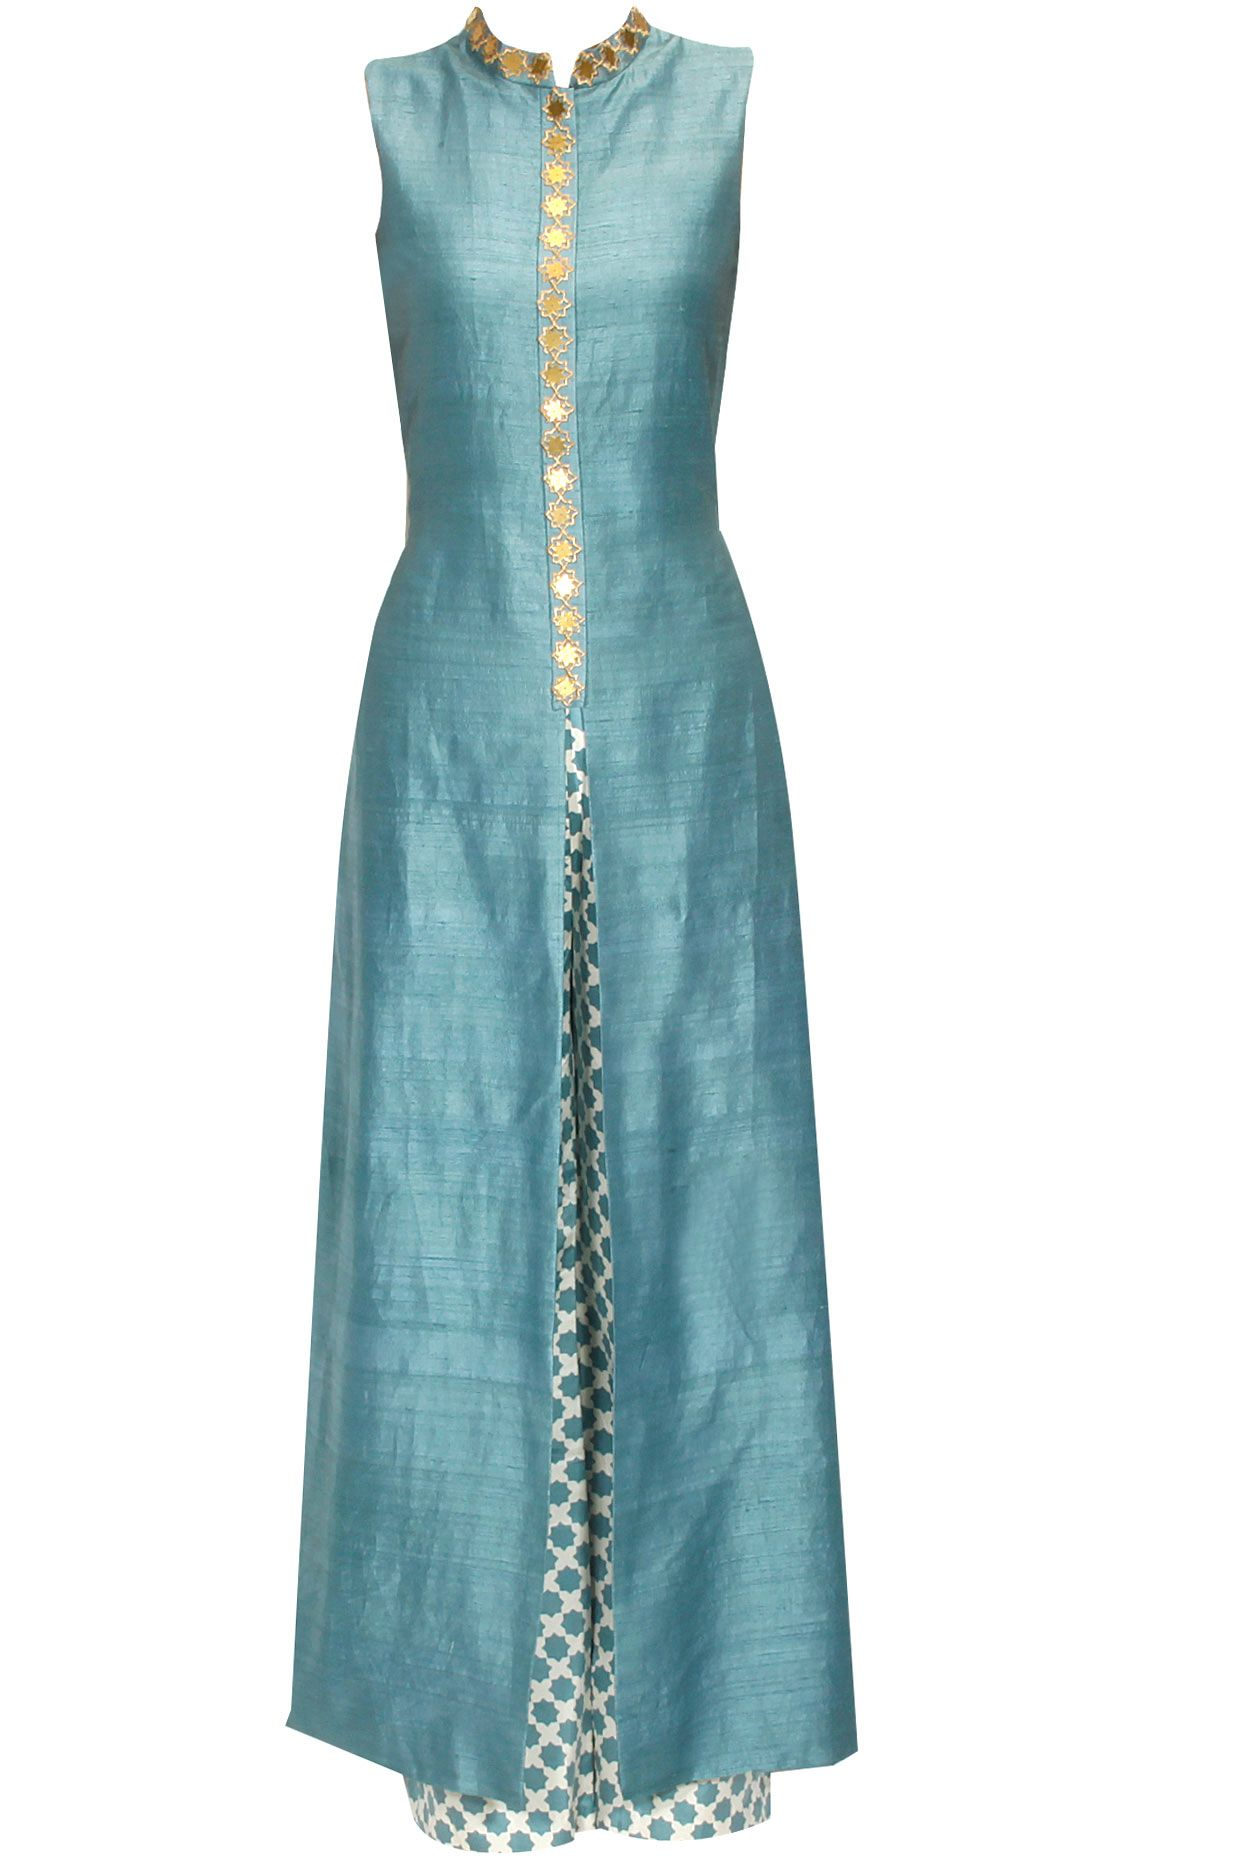 Teal star embroidered anarkali with beige star print pants available